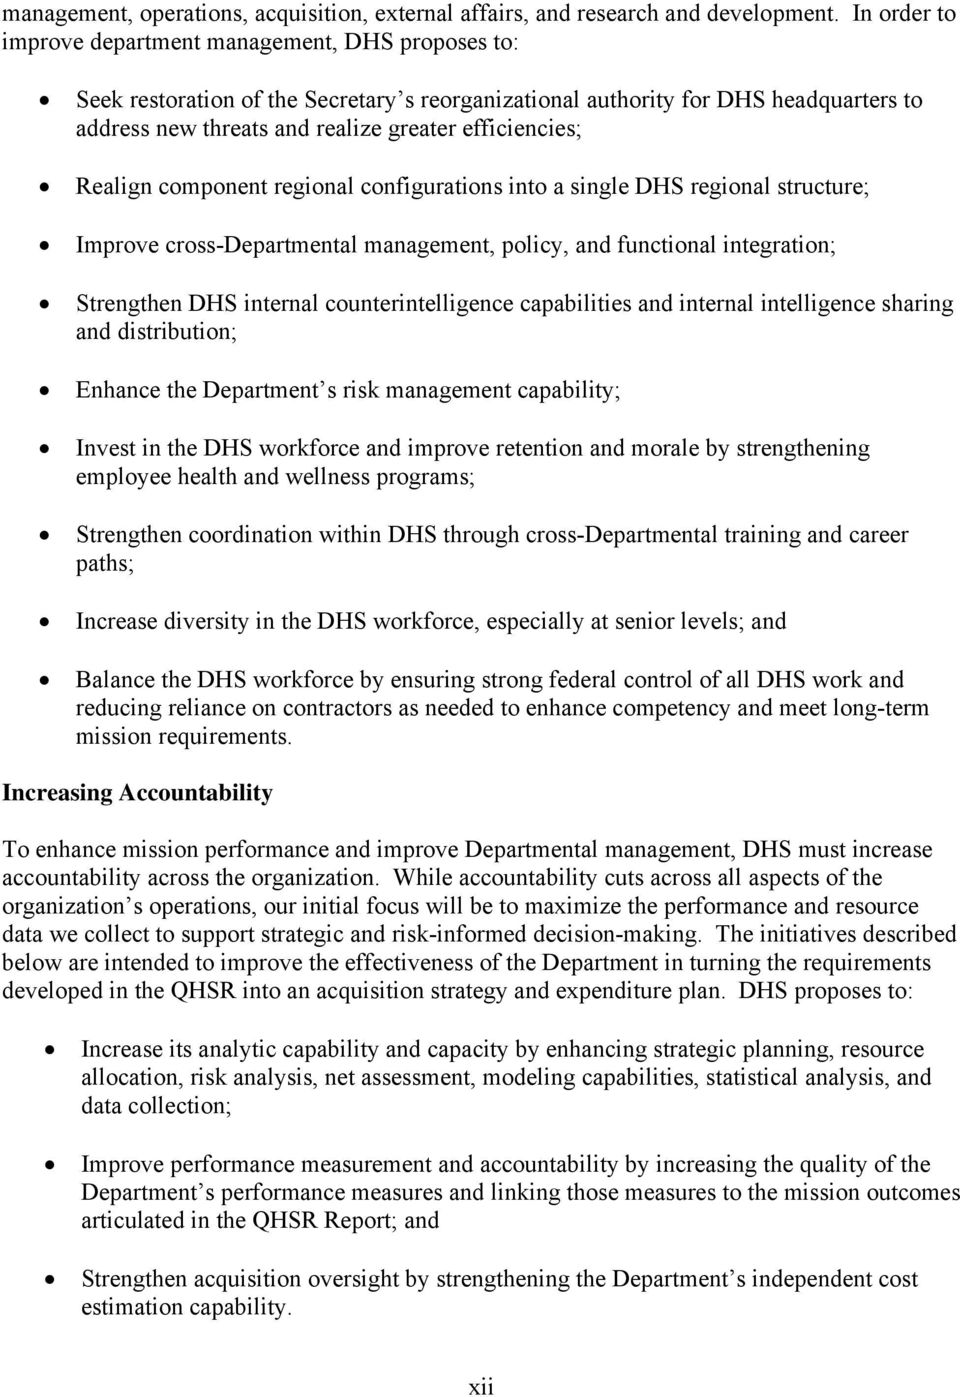 efficiencies; Realign component regional configurations into a single DHS regional structure; Improve cross-departmental management, policy, and functional integration; Strengthen DHS internal